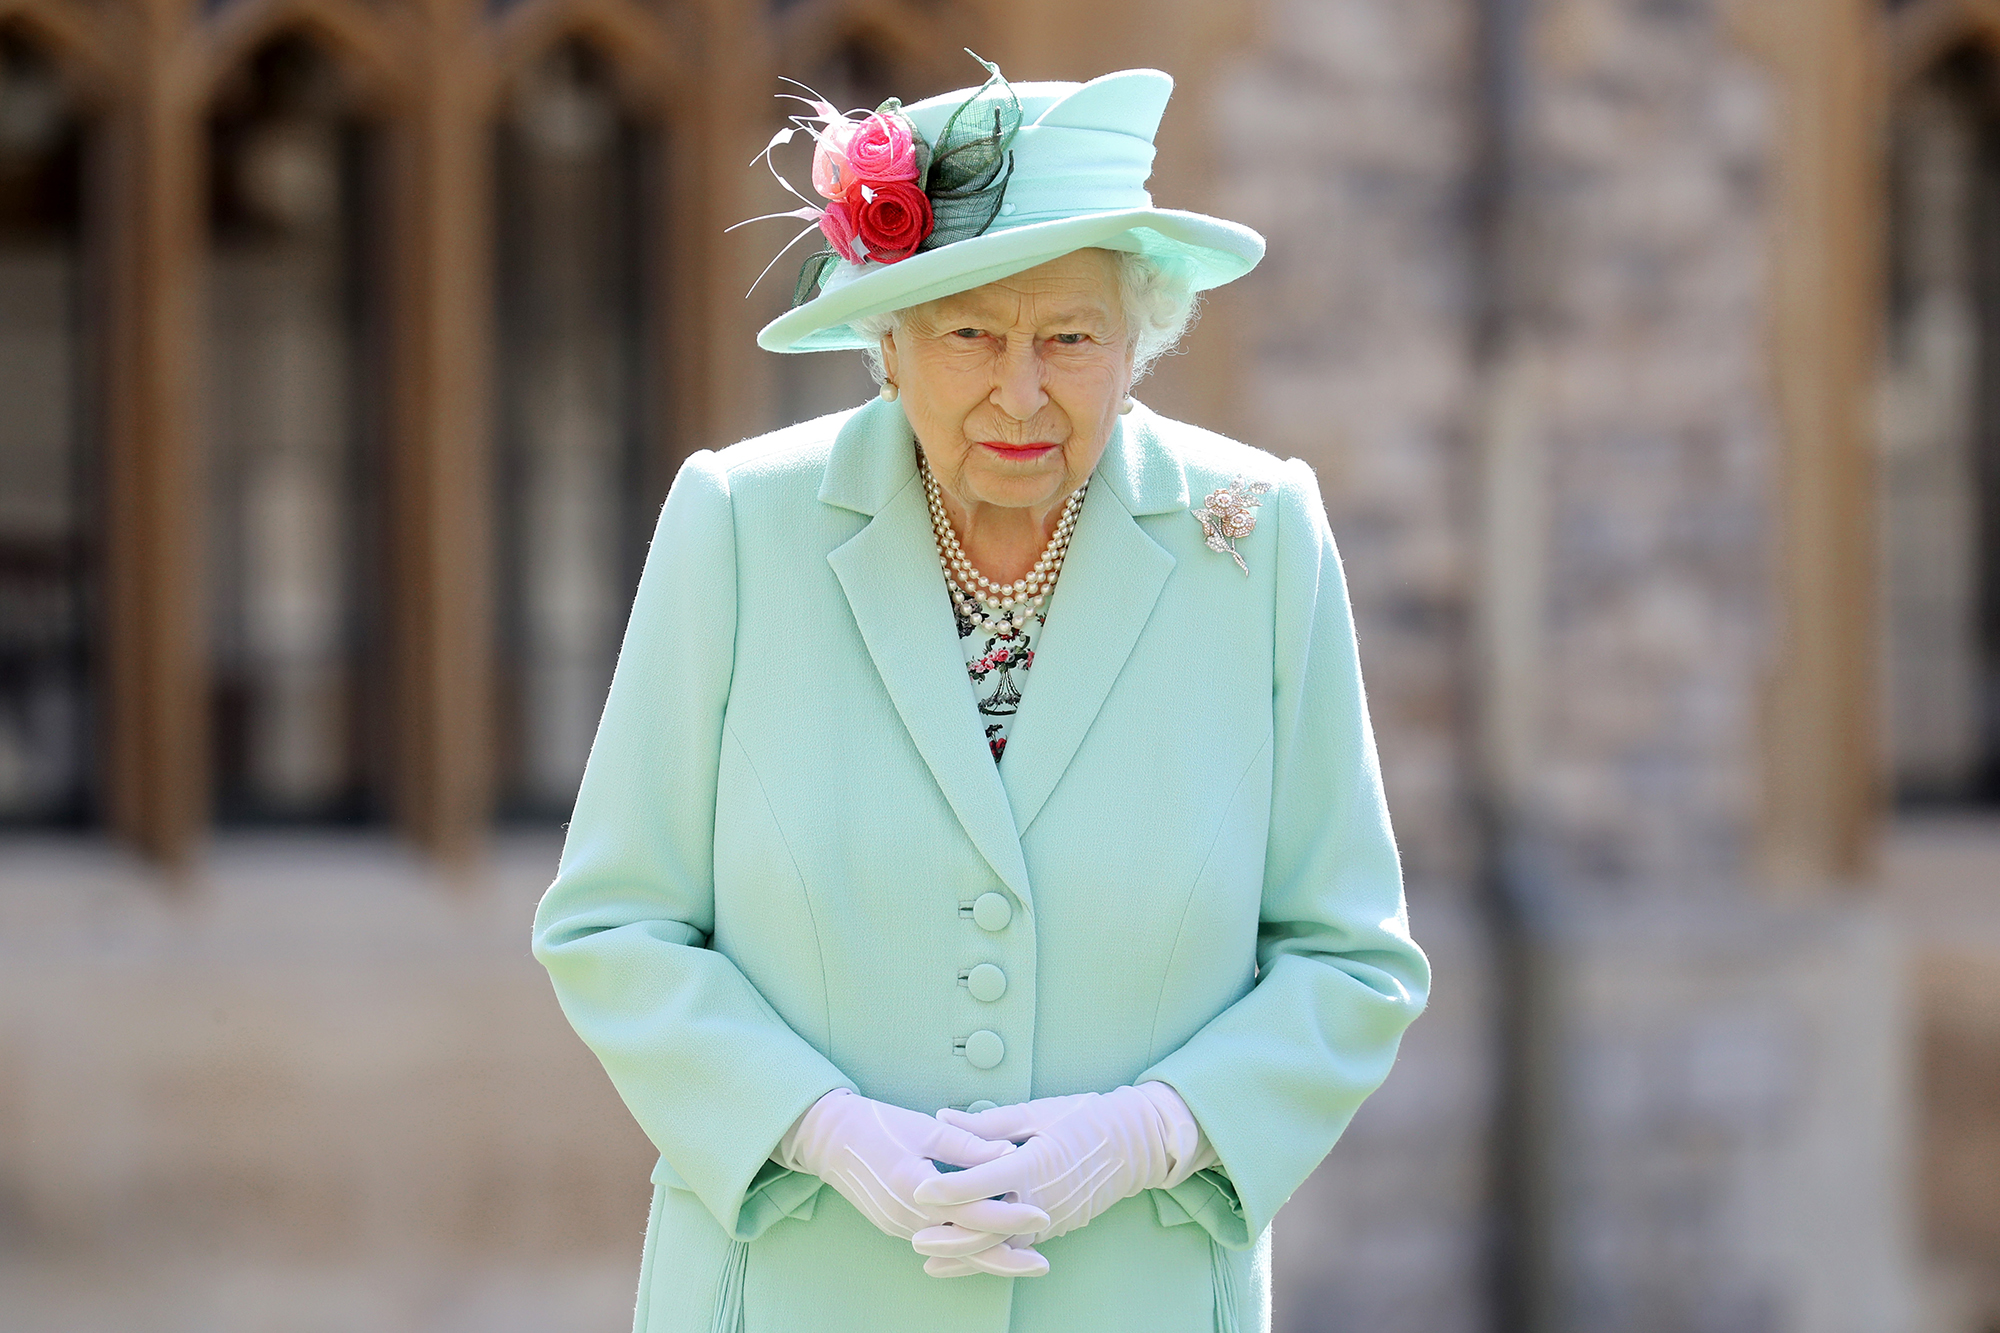 The Queen's real estate portfolio is being slammed by the pandemic. Taxpayers will bail her out